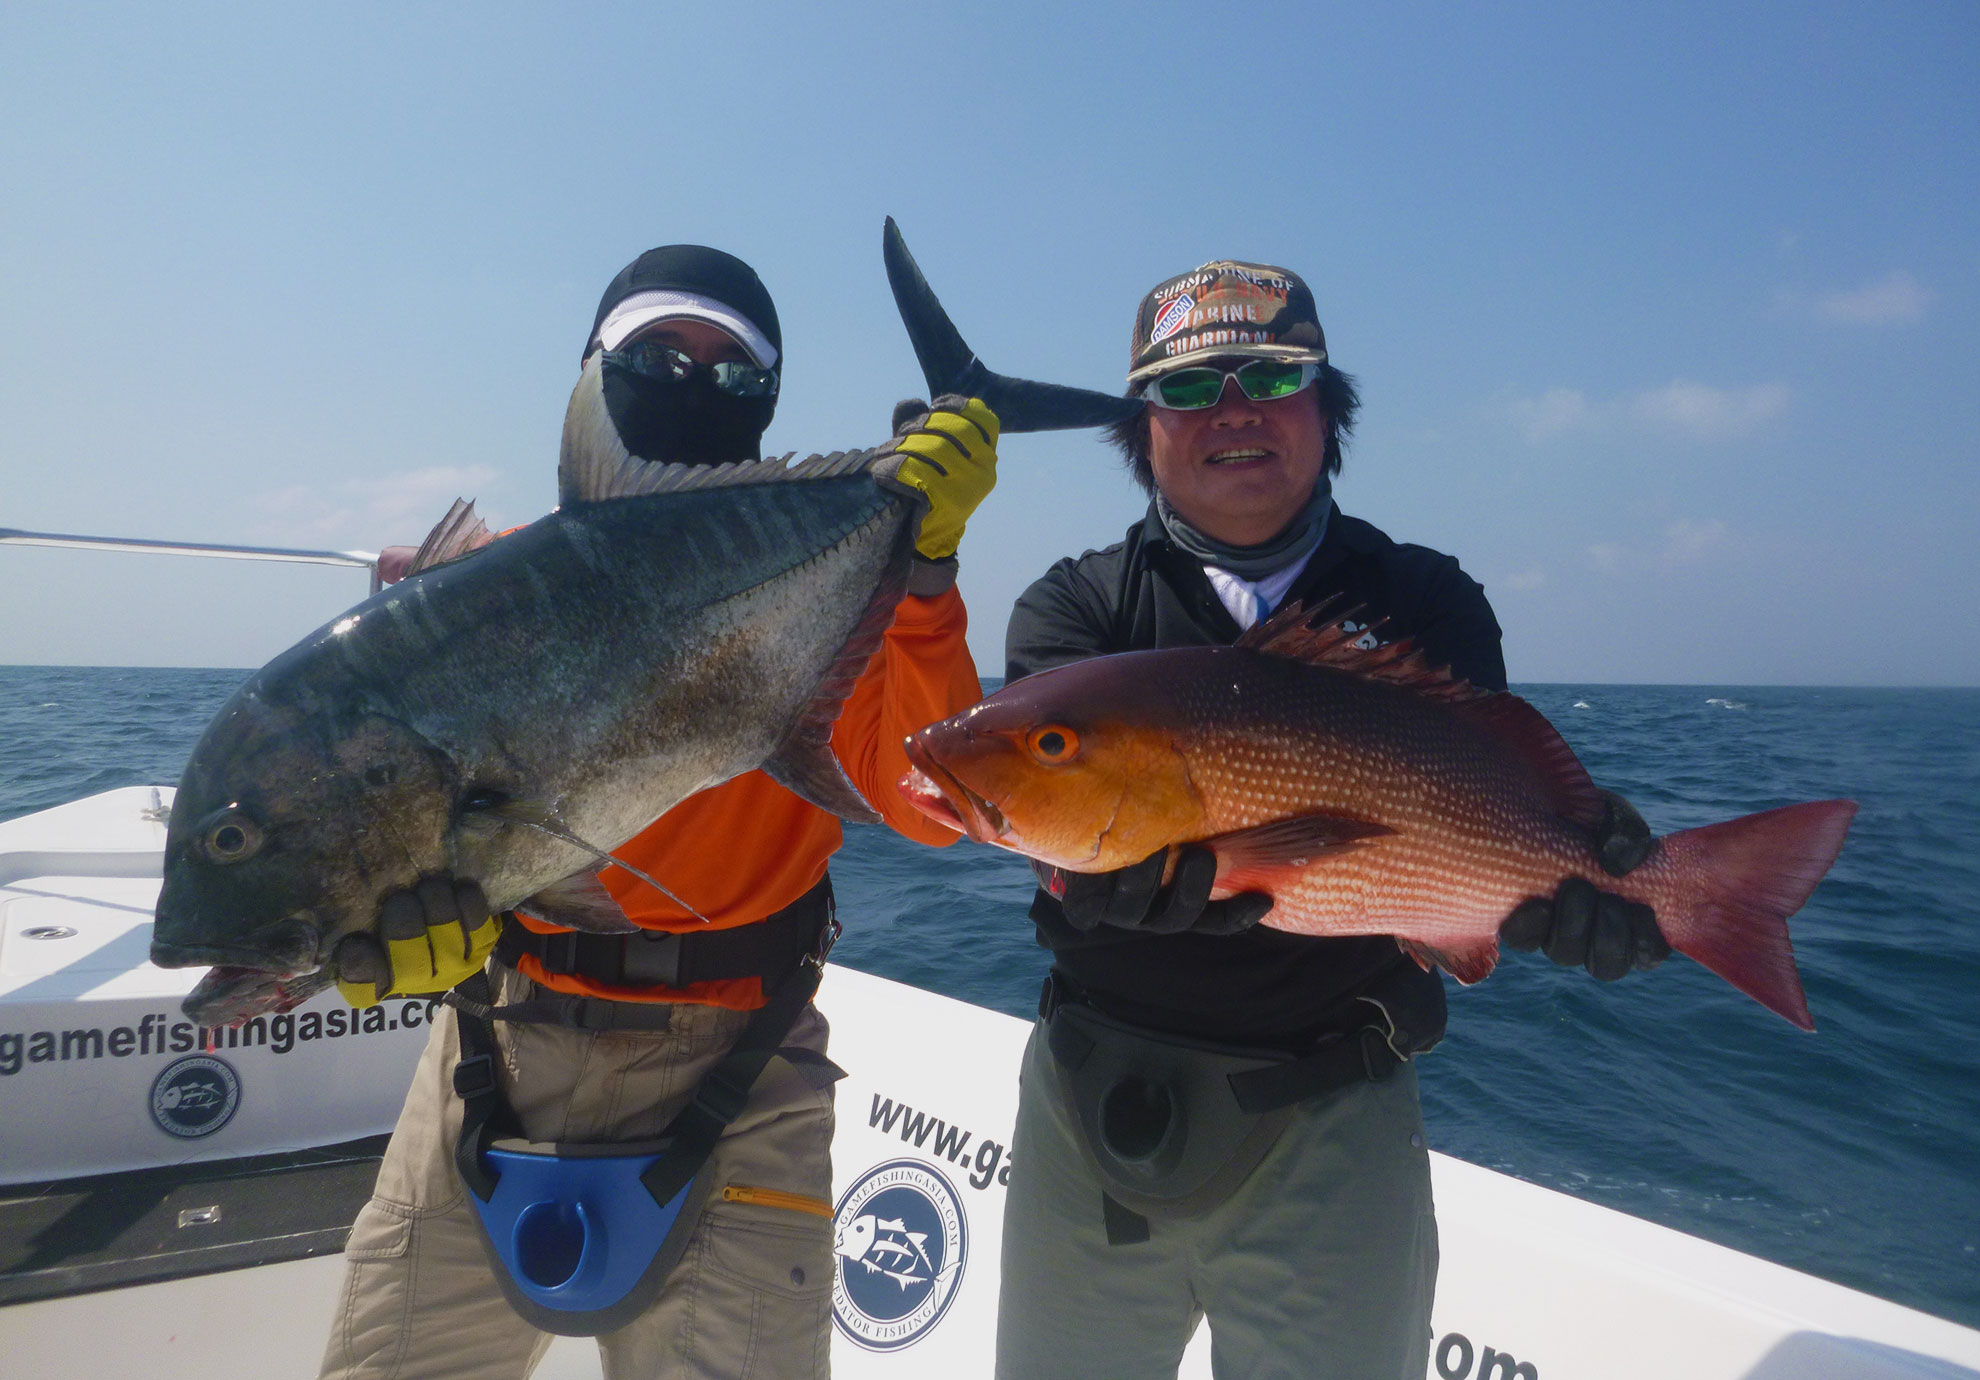 No.8_Giant-trevally_Bohar_snapper_double-hookup_fishing_popping_andaman_shimano-stella_gamefishingasia_boat_big-fish_gtpopping_boat-charter